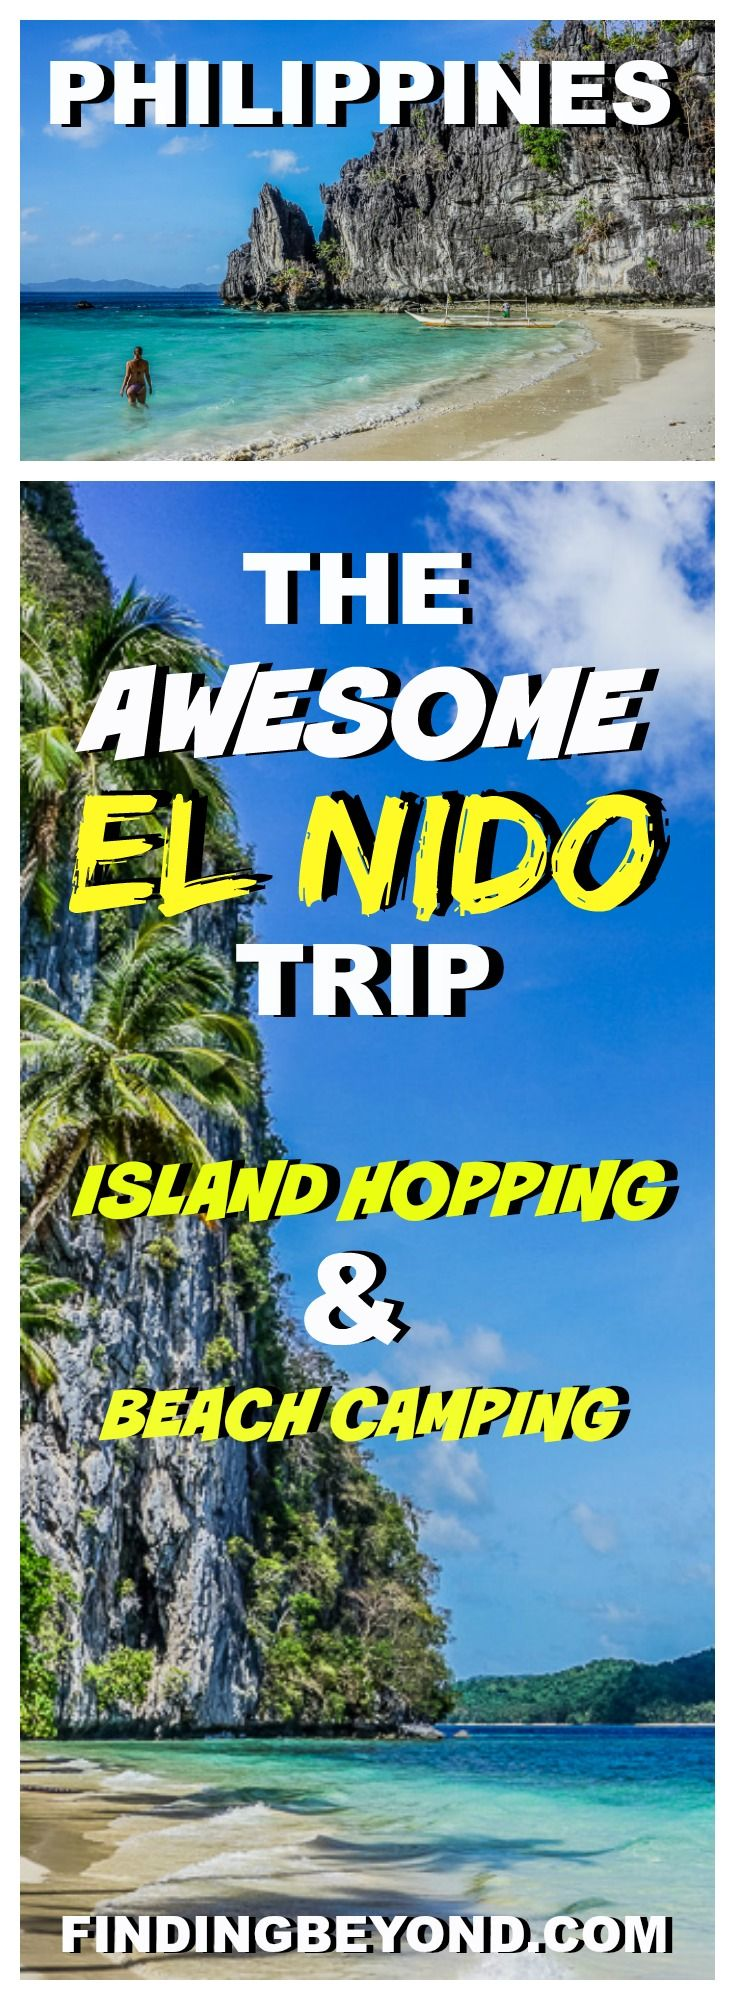 Check out our awesome El Nido (Philippines) trip itinerary. Included is information on El Nido island hopping, El Nido camping and how to get there. | Snake Island El NIDO | Big Lagoon El Nido | Small Lagoon El Nido | Beach Camping in the Philippines | Island Camping | El Nido Boat Tours | best Beaches Philippines | Philippines on a budget | Top Places To Visit In the Philippines | Best attractions in El Nido